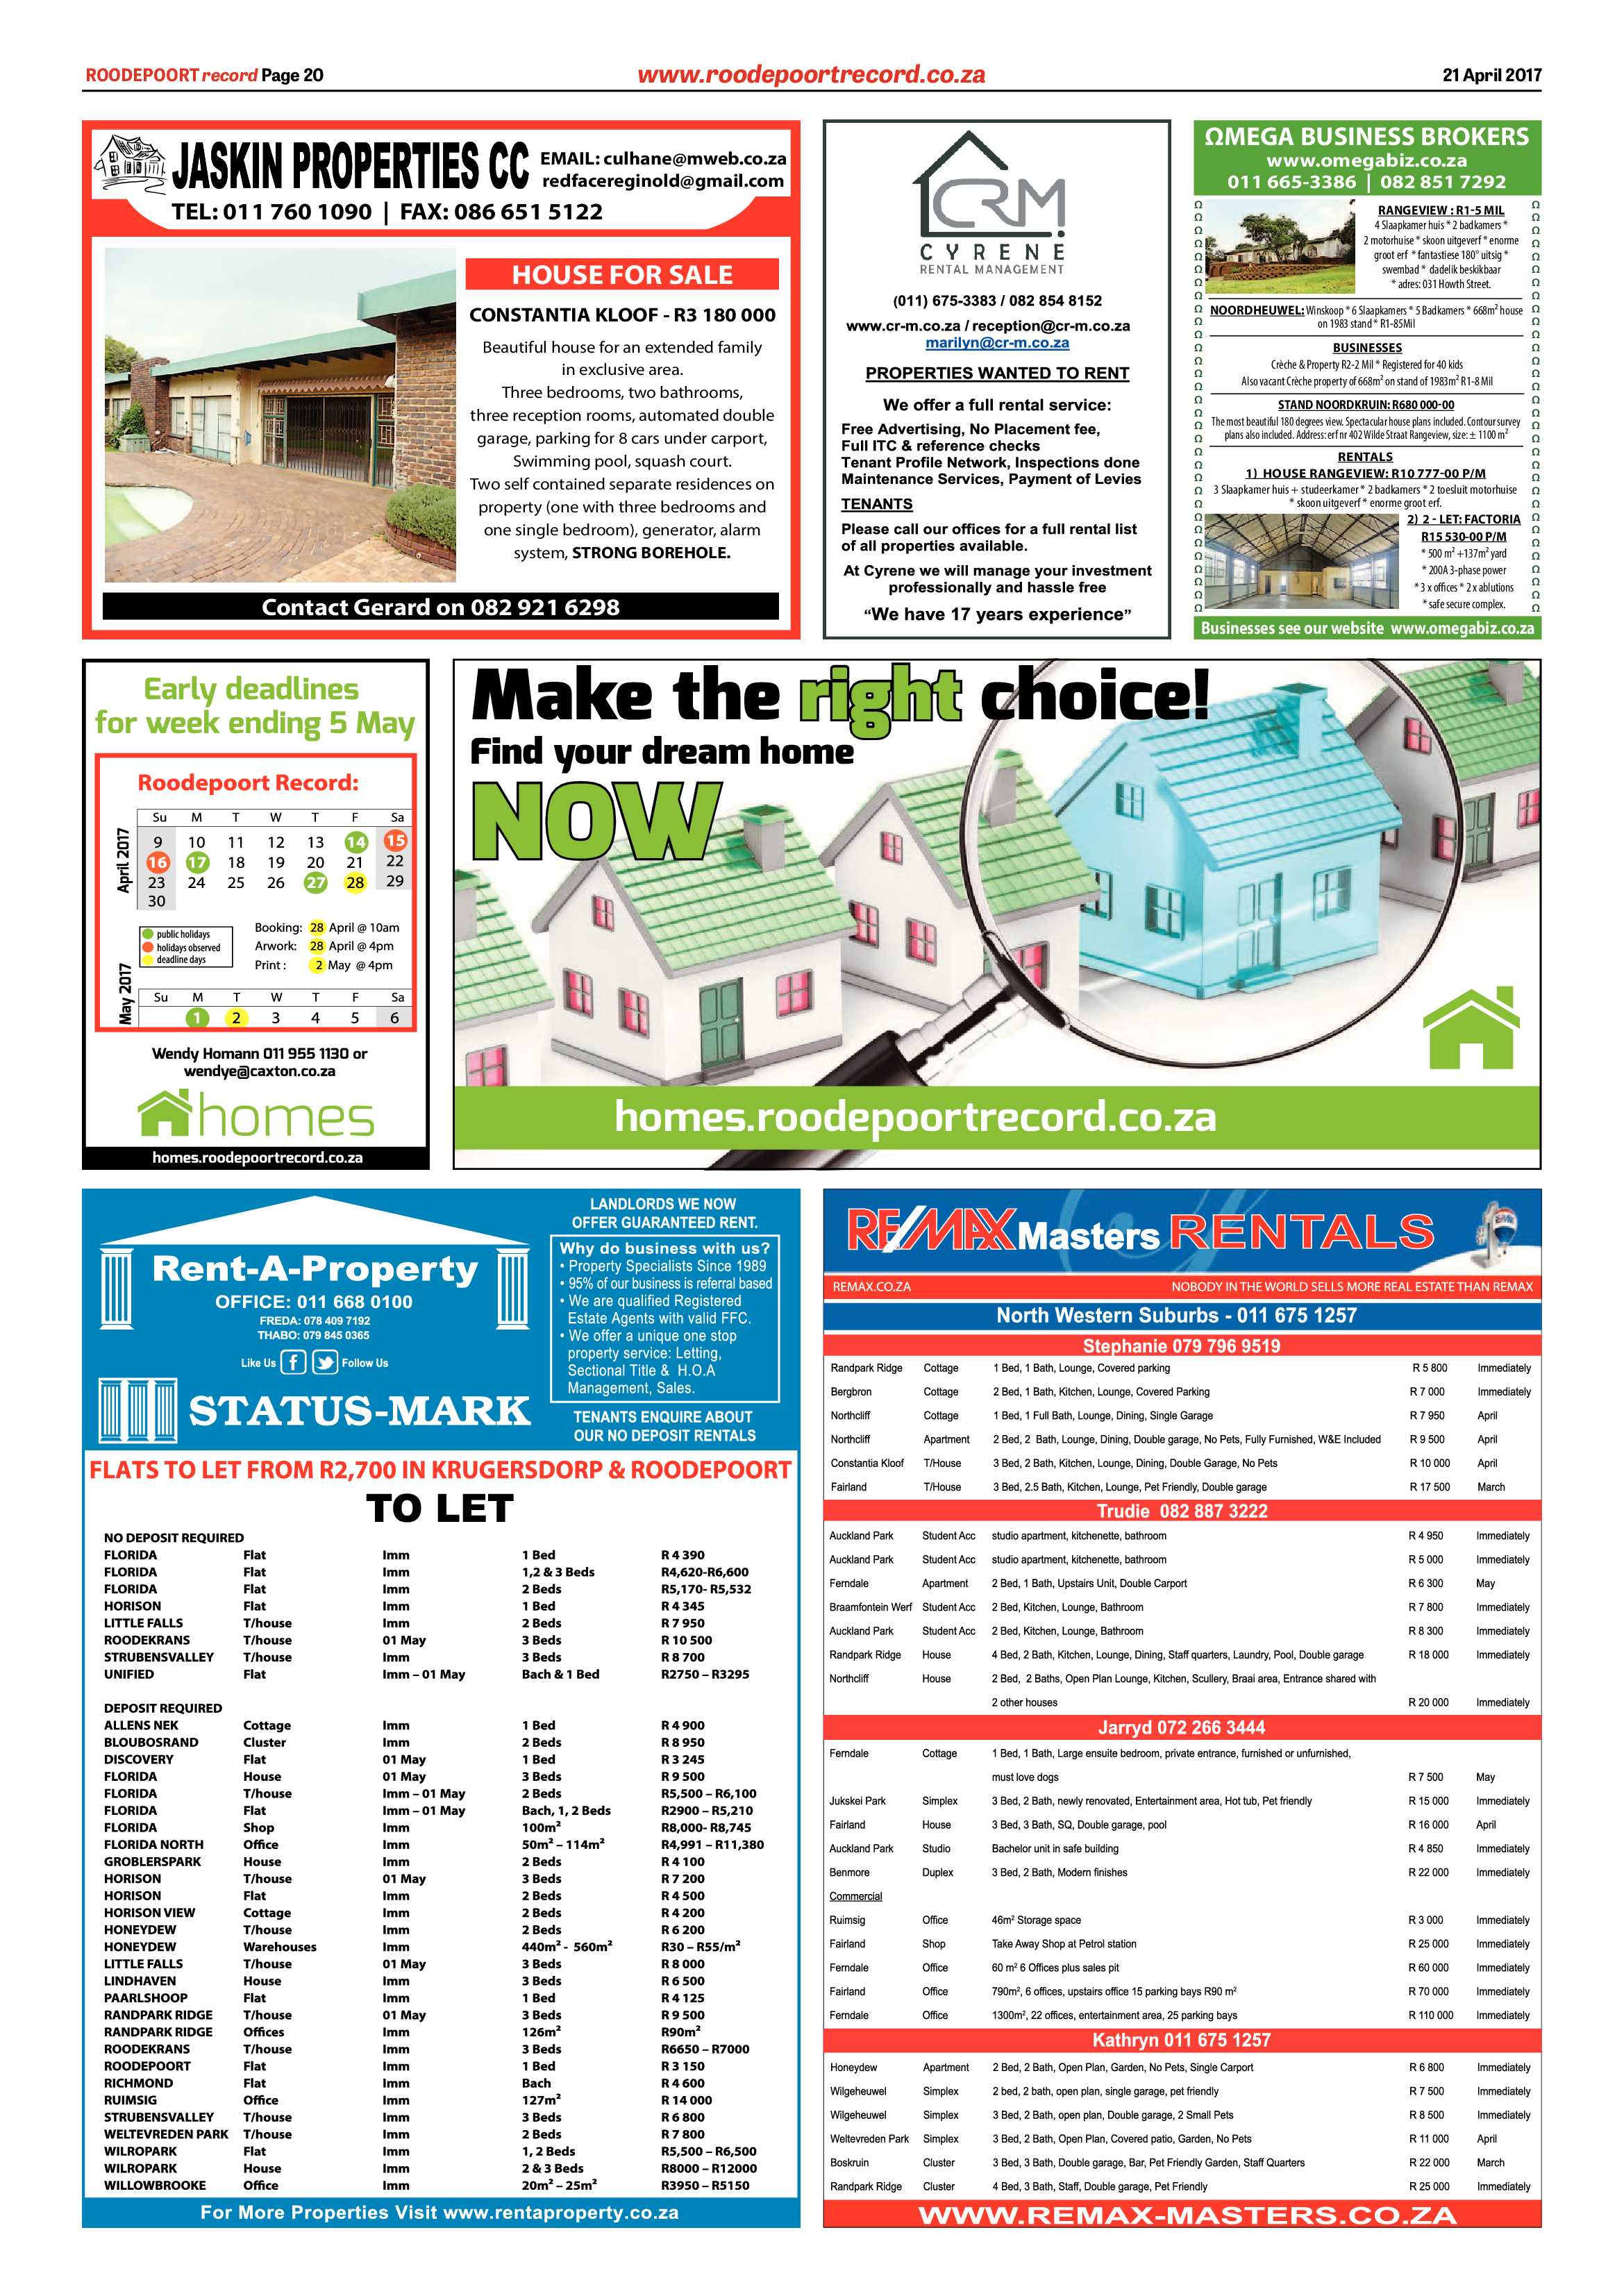 roodepoort-record-21-april-2017-epapers-page-20